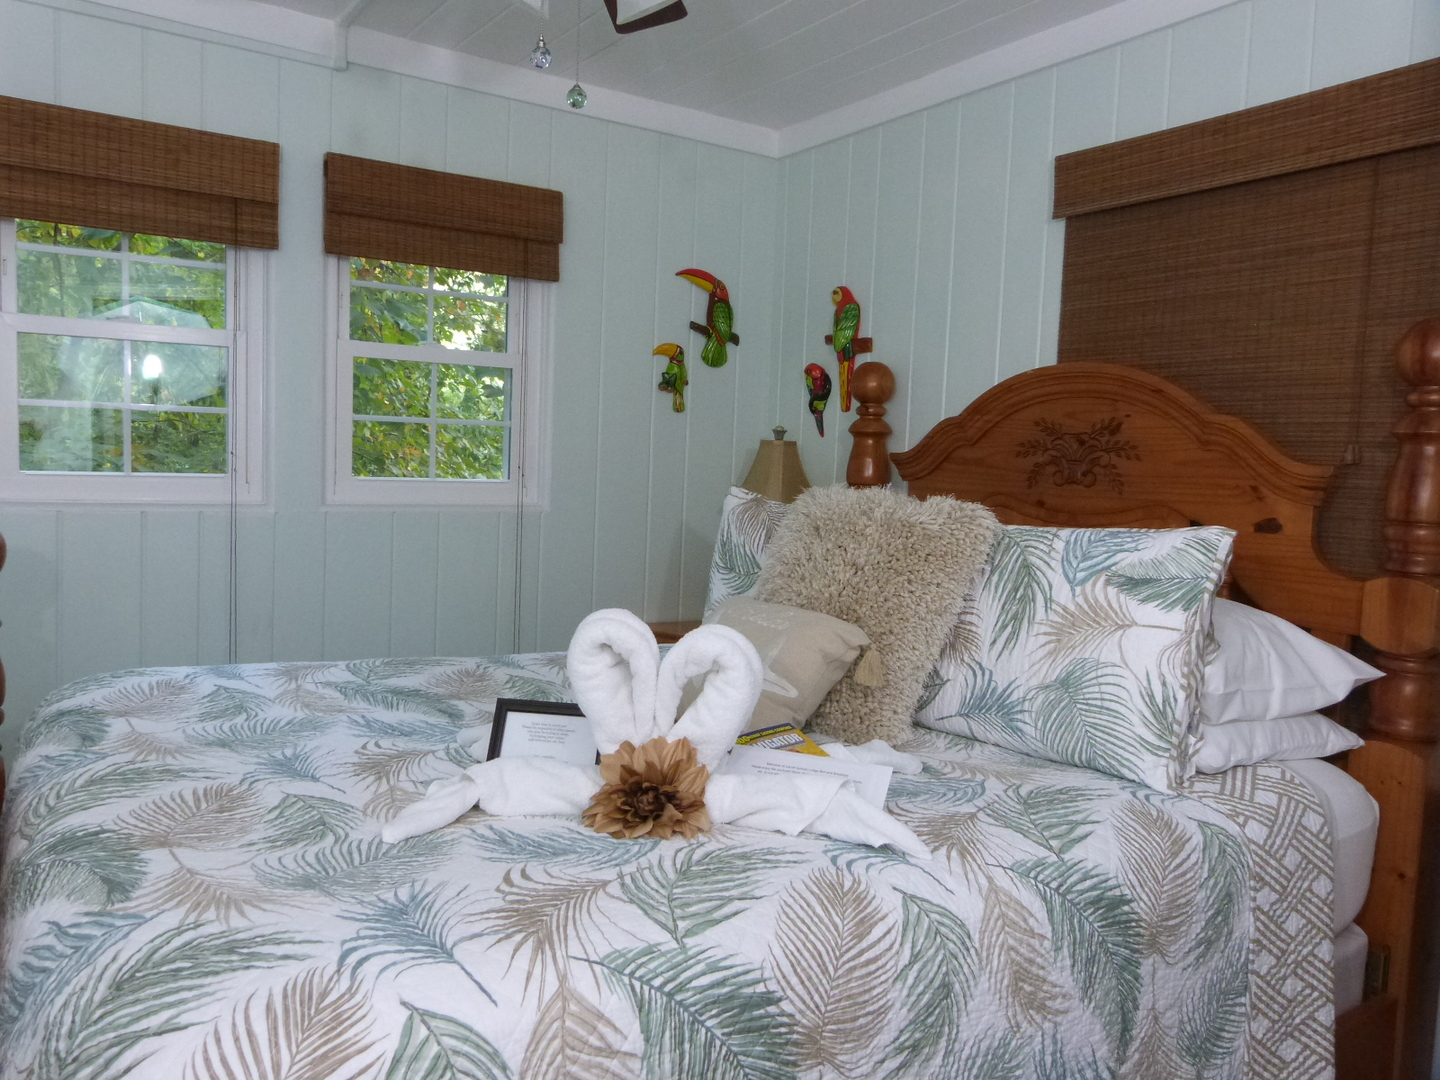 A bedroom with a bed and a window at Laurel Springs Lodge Bed and Breakfast.